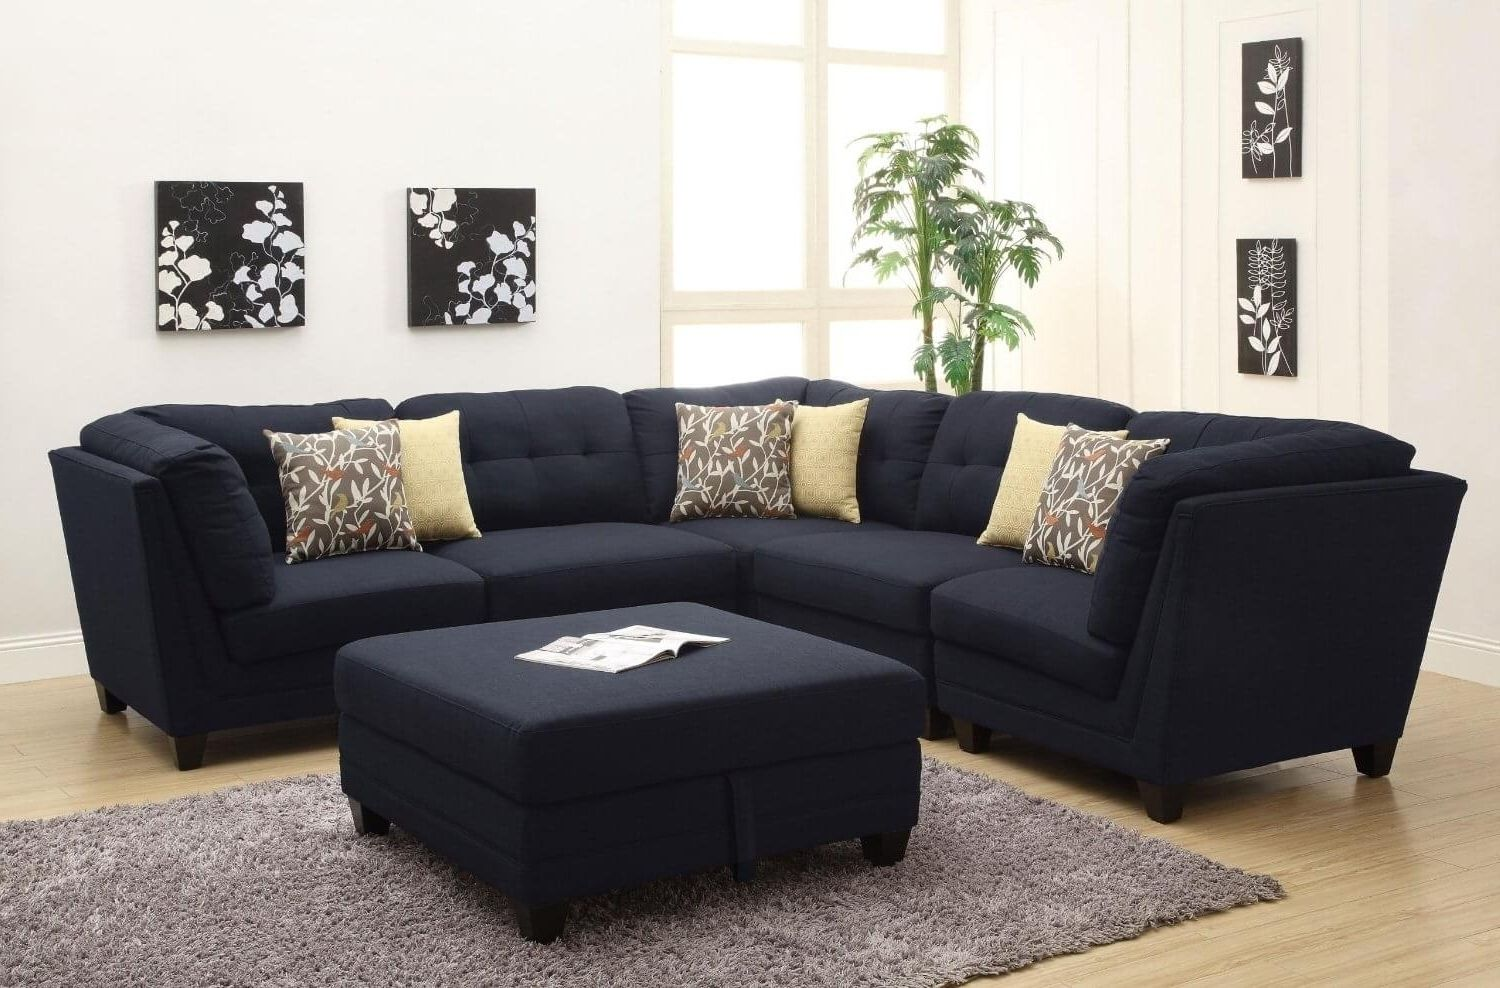 Sectional Sofas Under 900 Cheap Couch Modular Sectional Sofa Cheap Living Room Sets